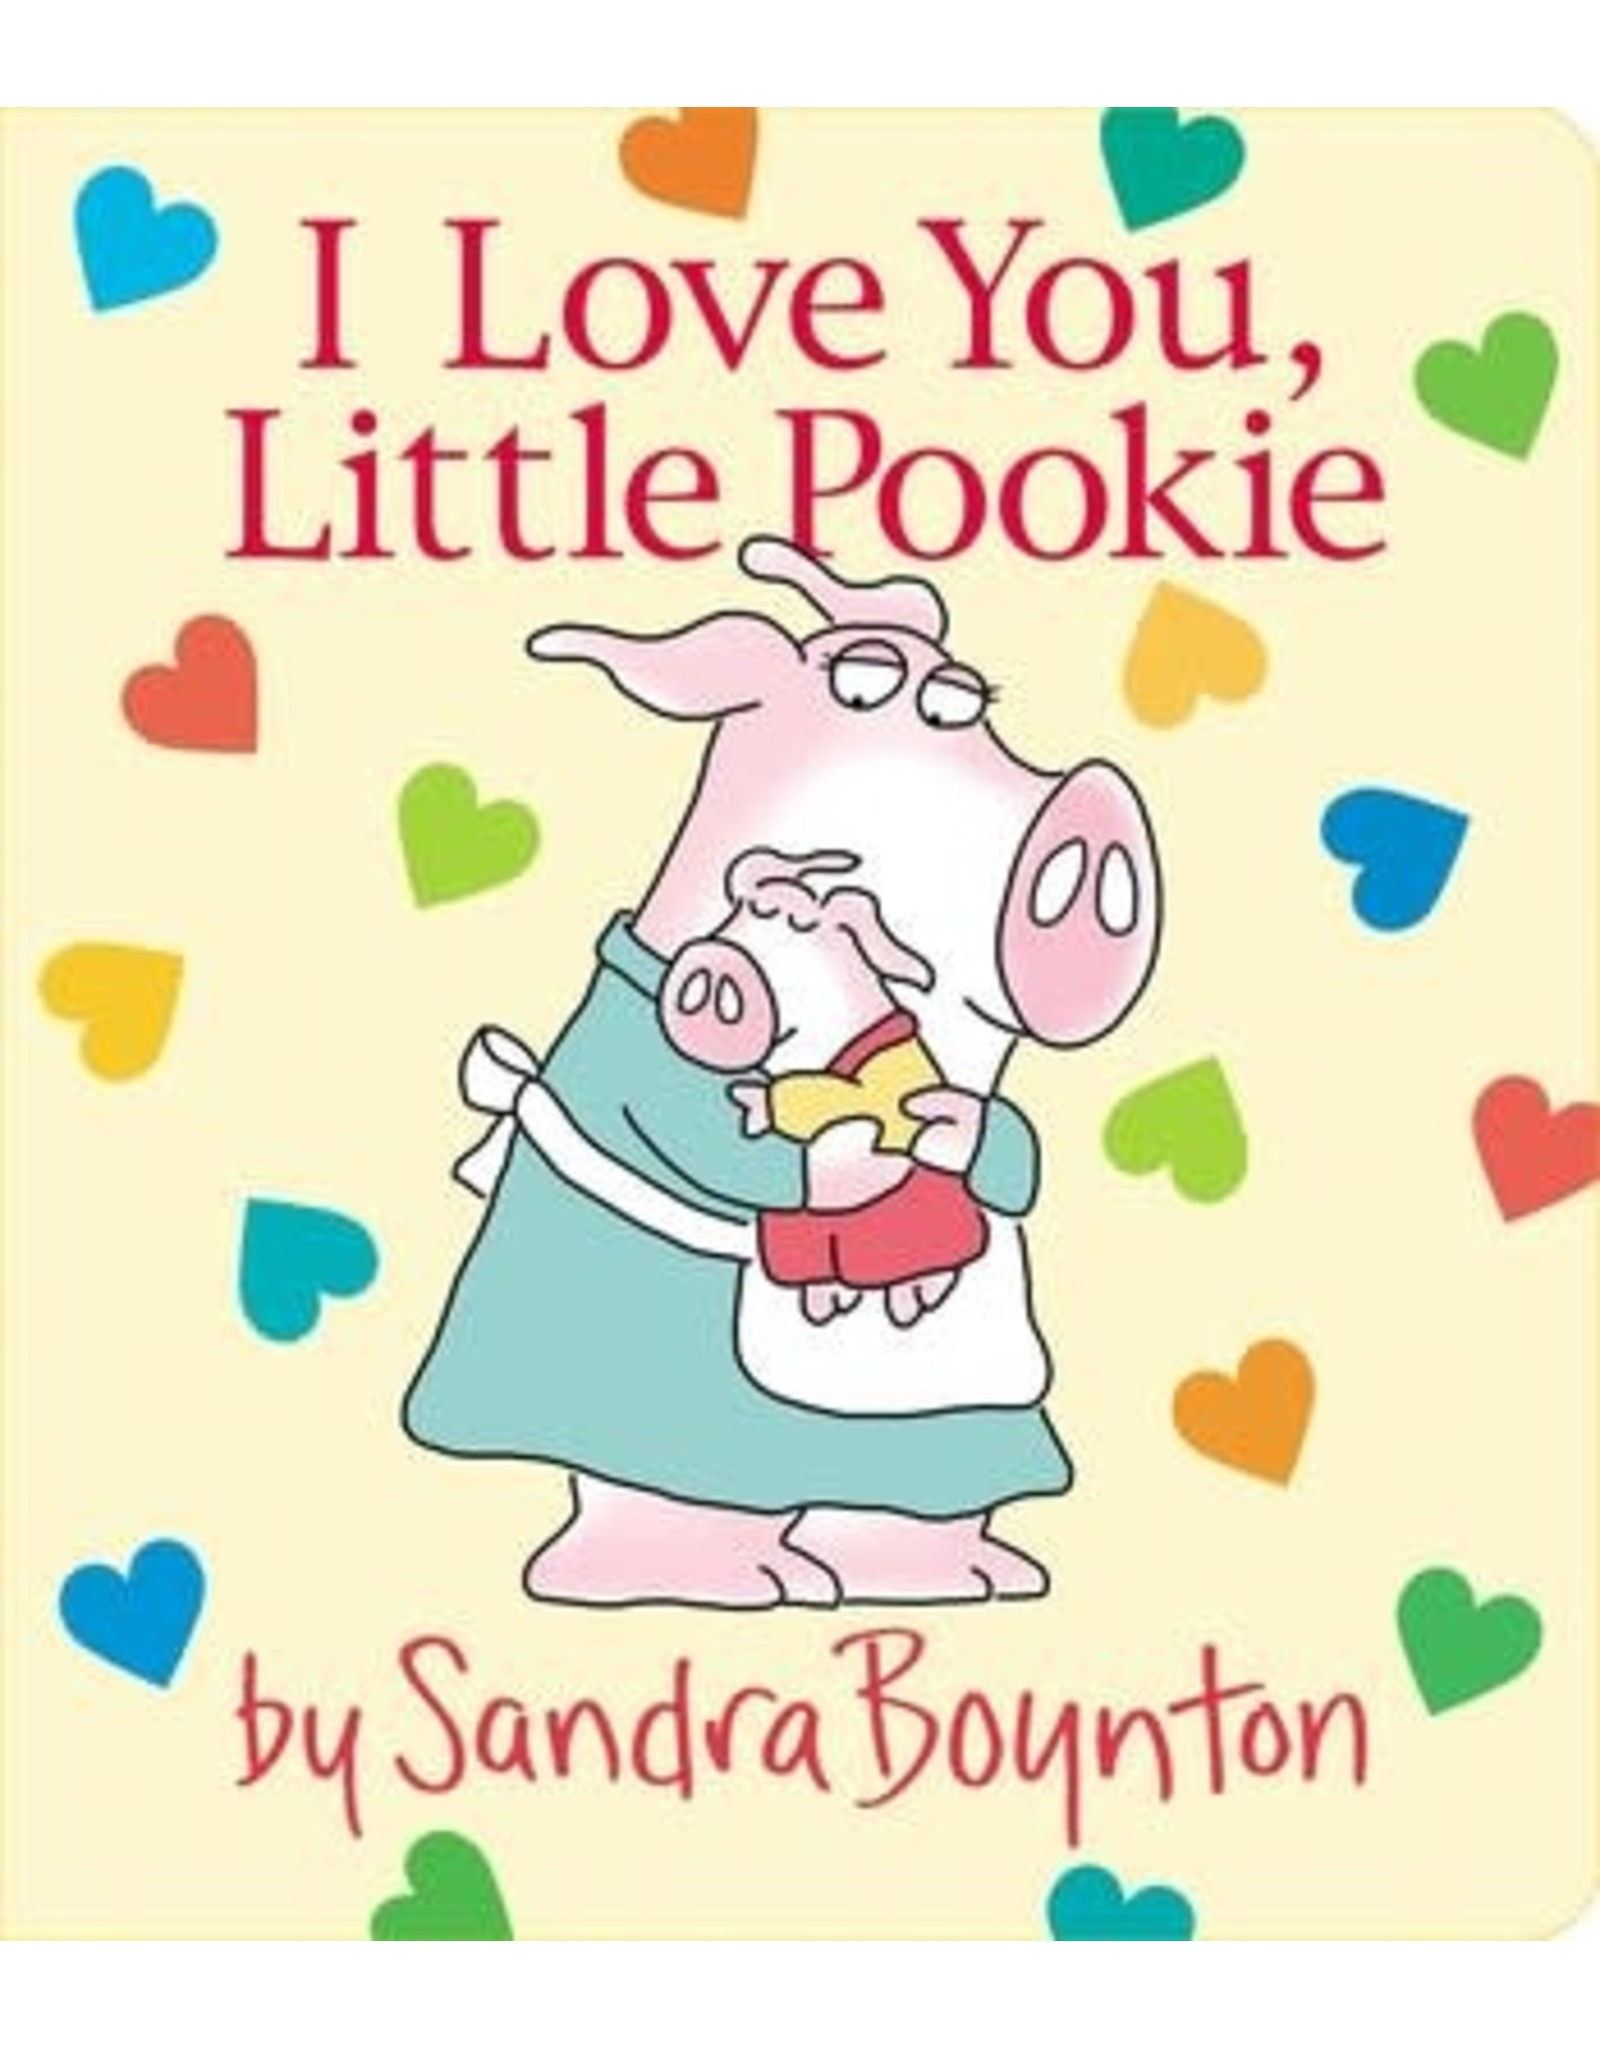 I Love You, Little Pookie by Sandra Boynton